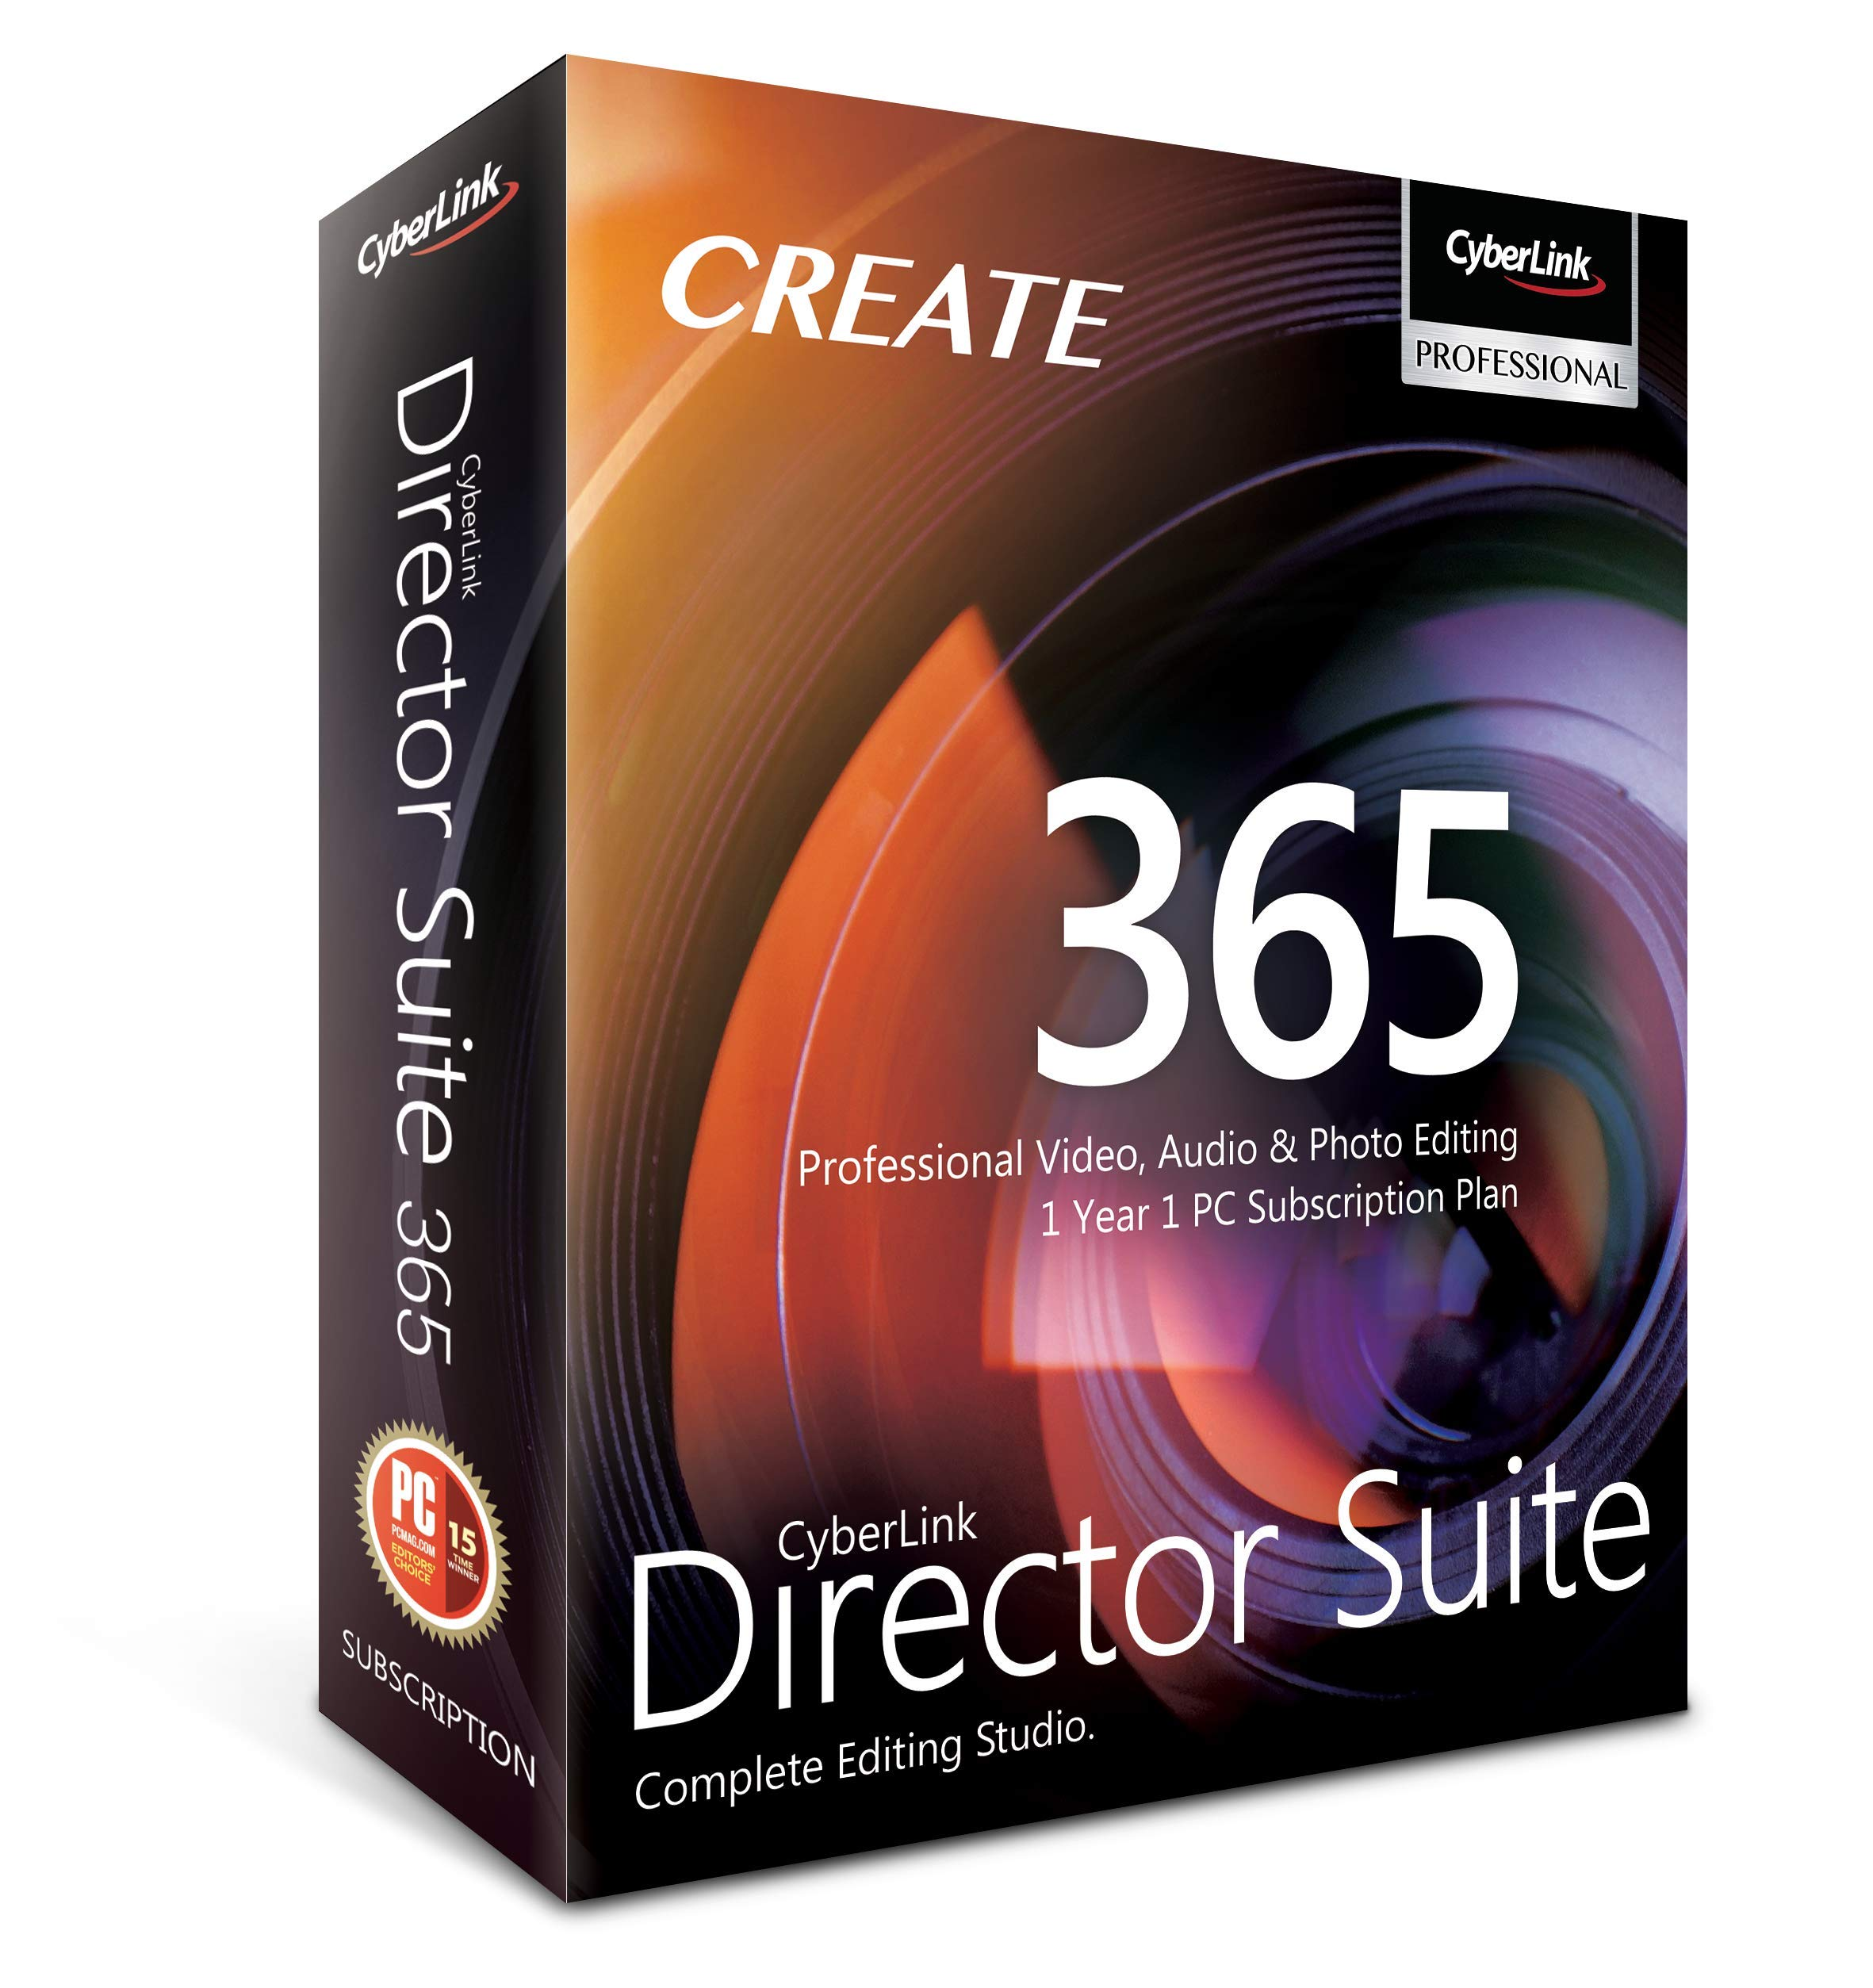 Cyberlink Director Suite 365   1 Year   1 PC